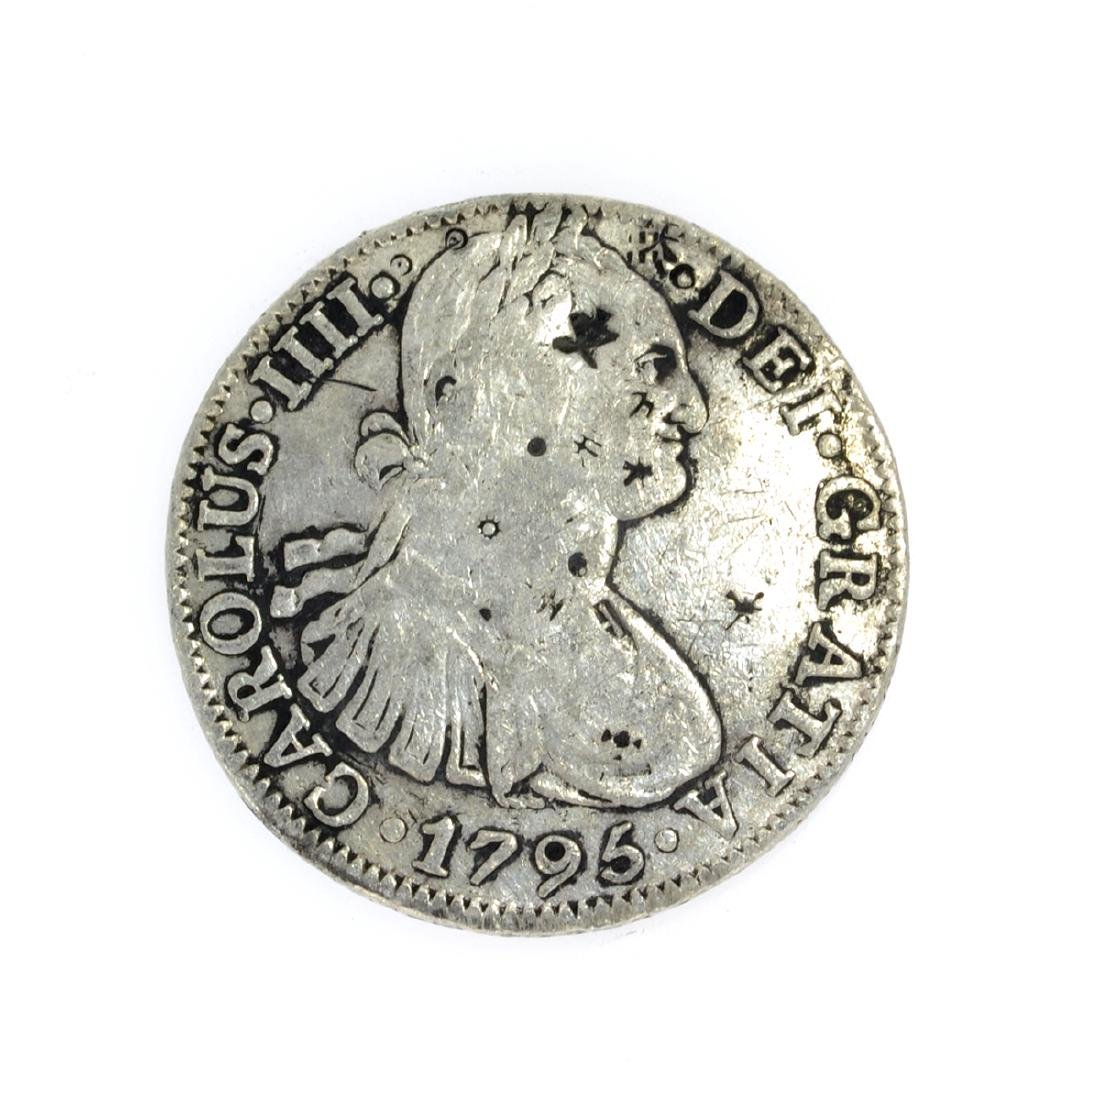 1795 Eigth Reales American First Silver Dollar Coin